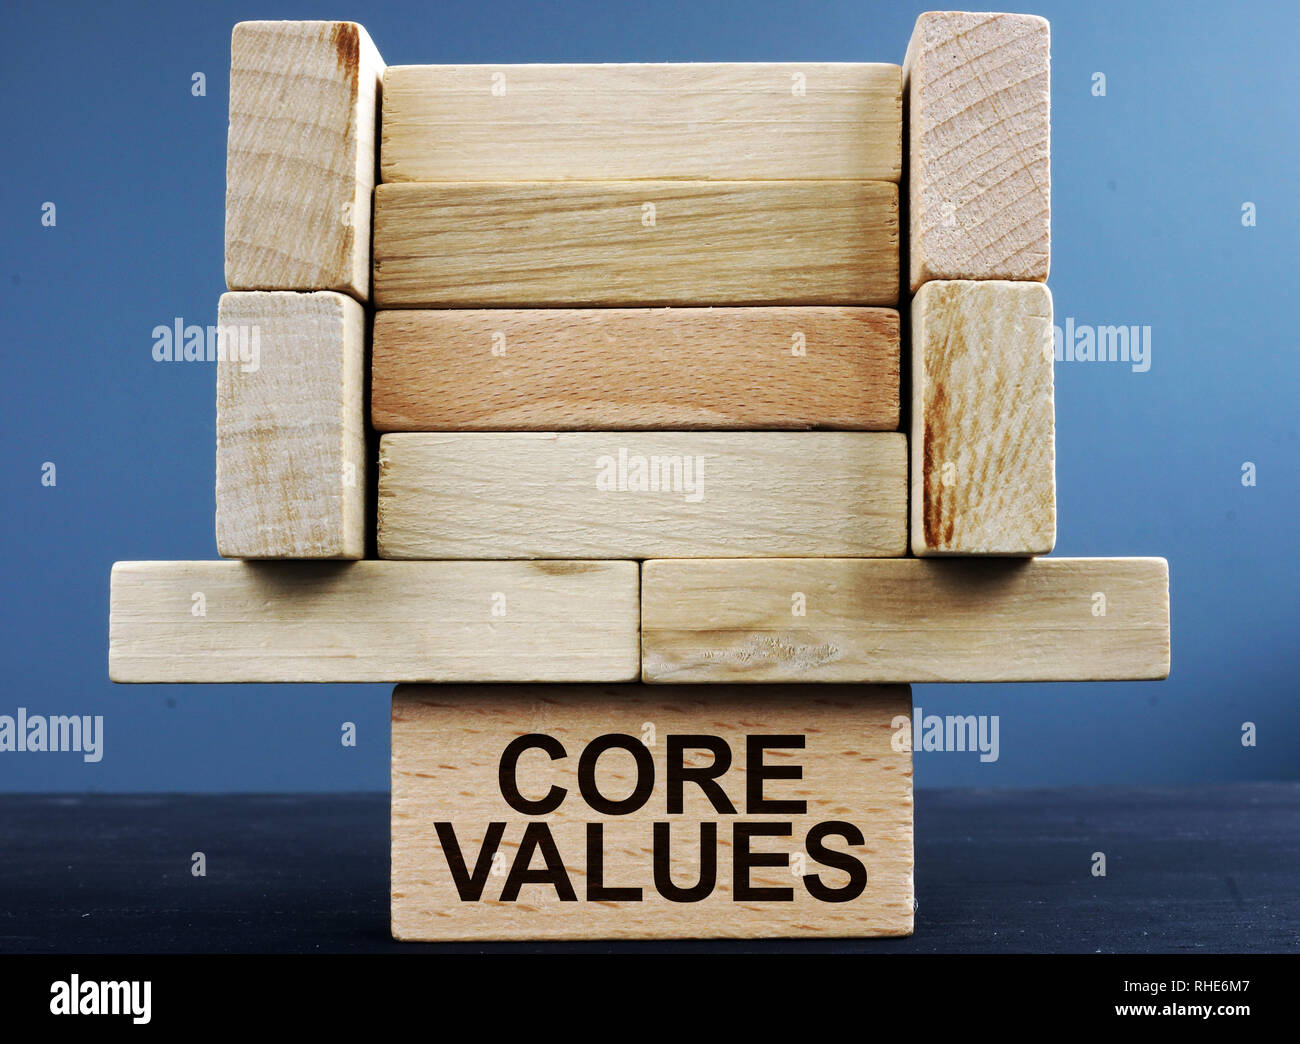 Tower of wooden blocks with sign core values. - Stock Image